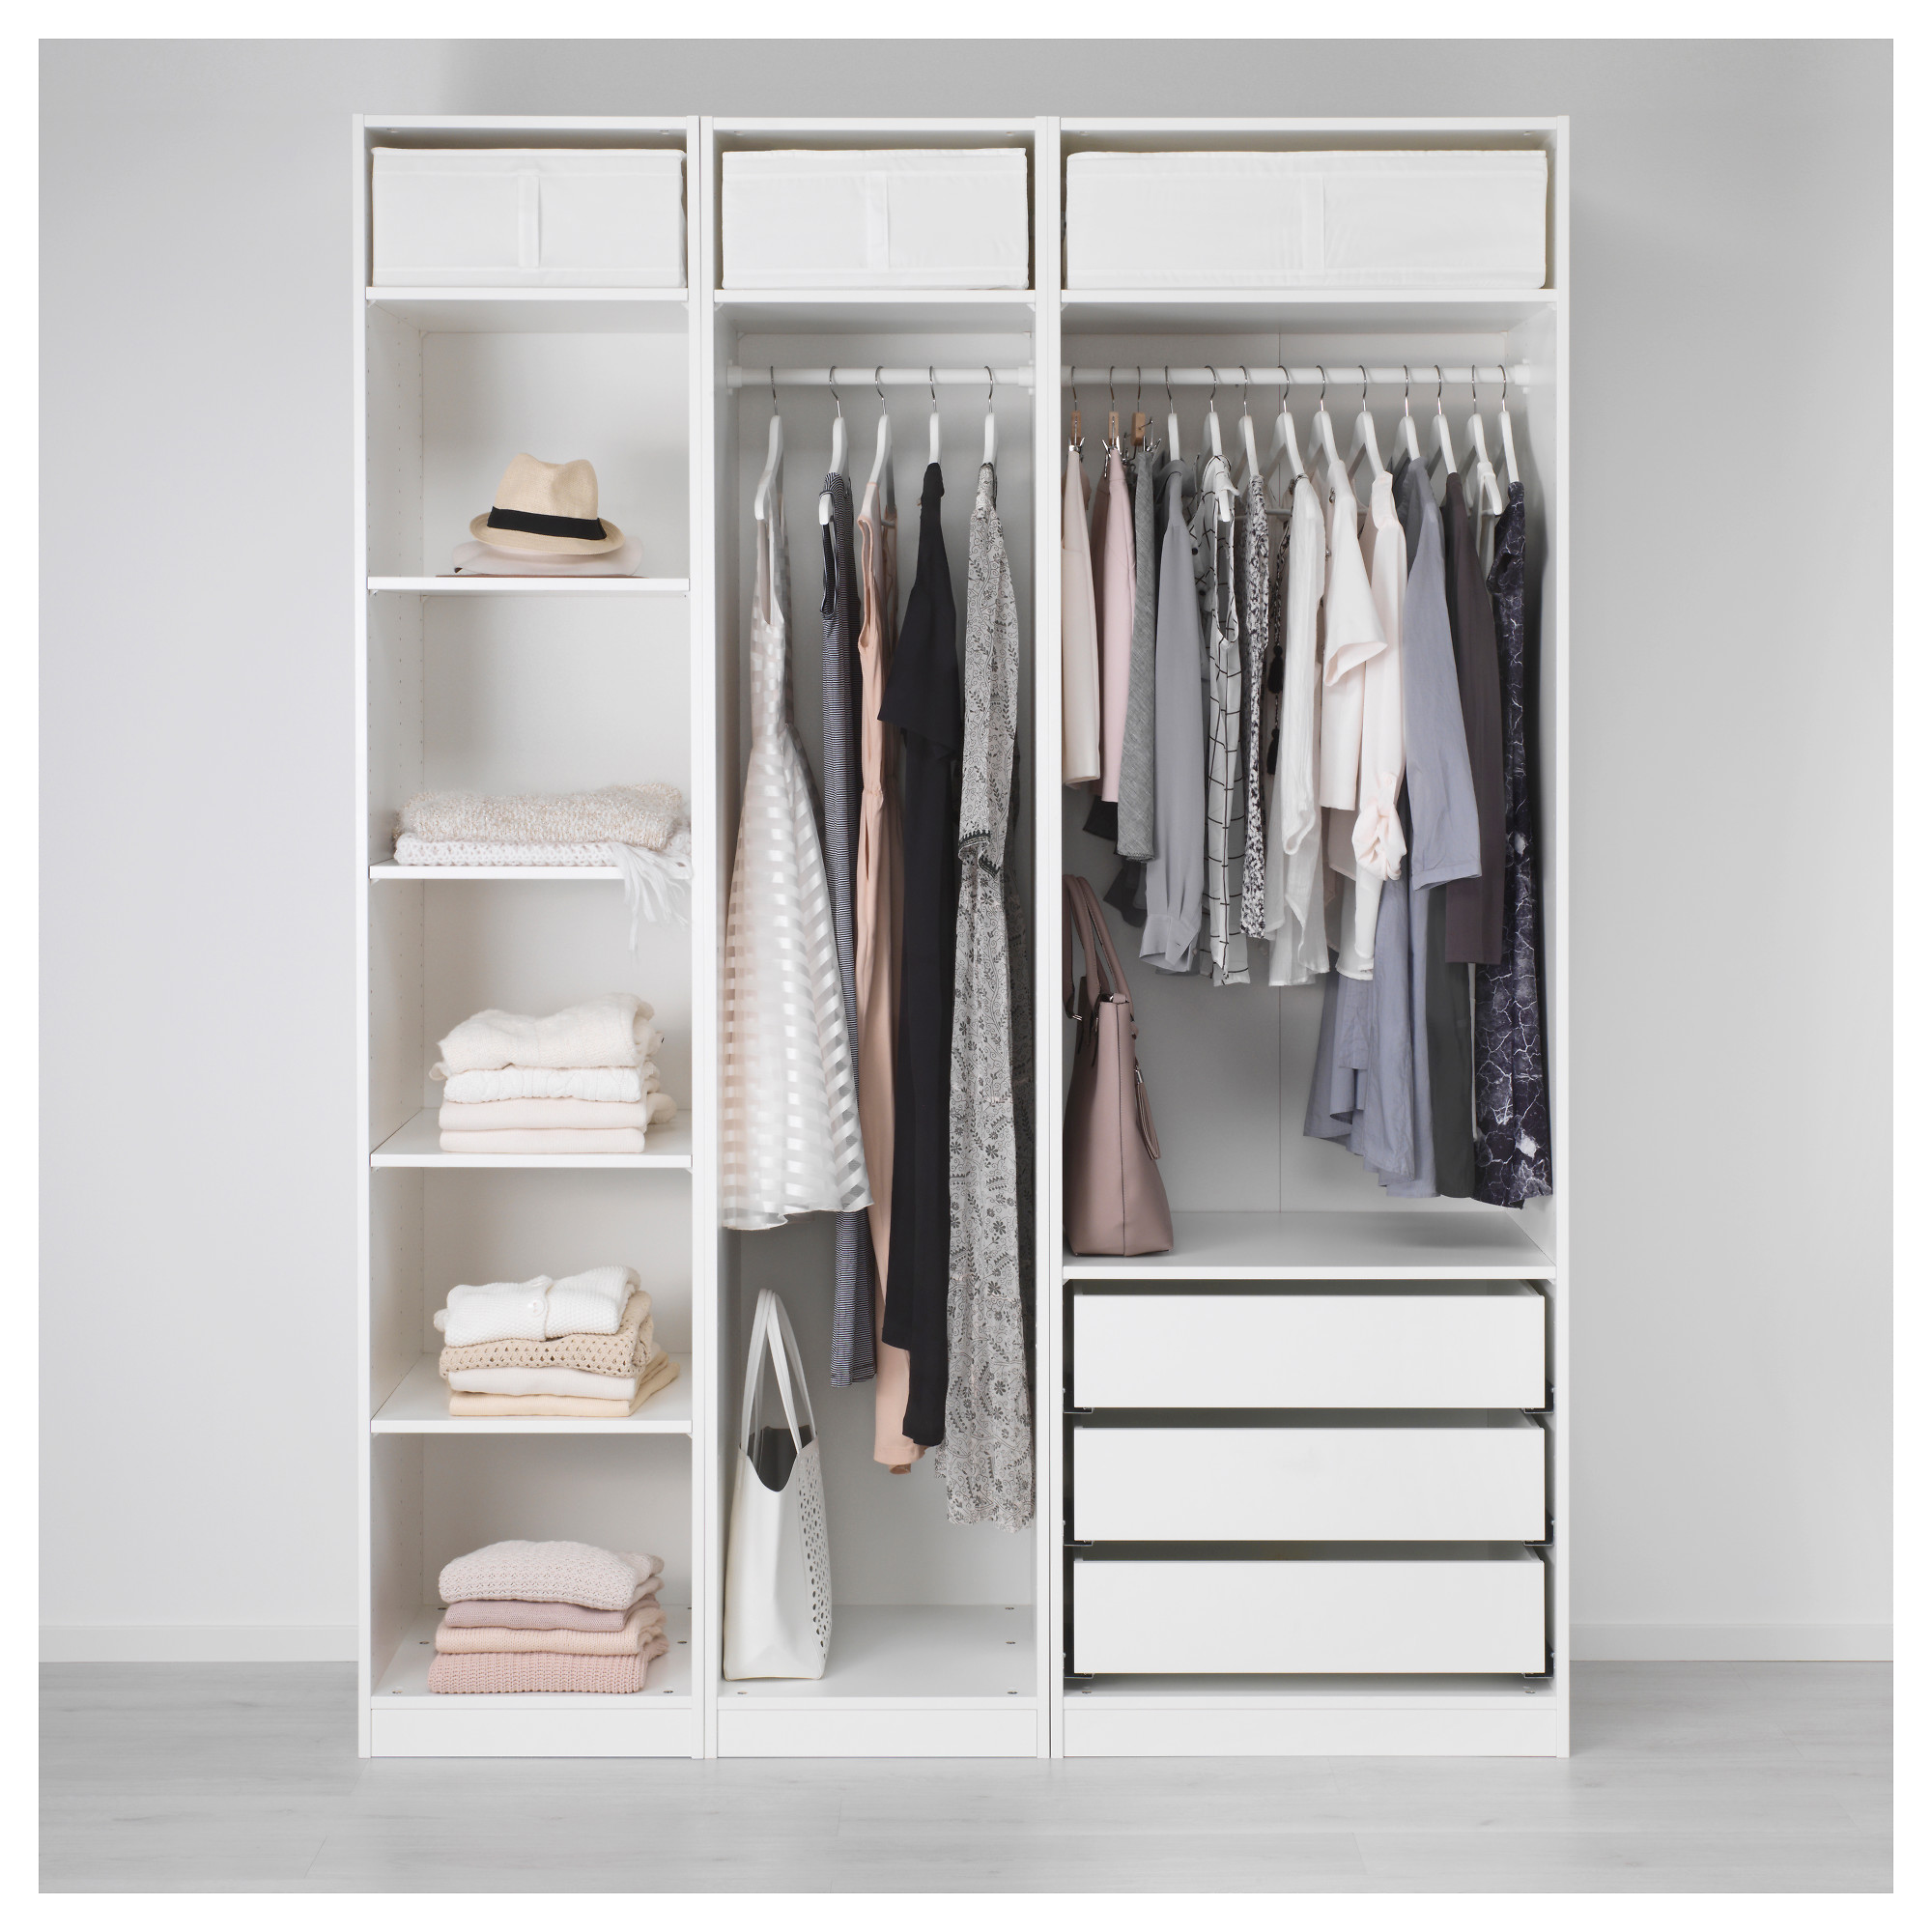 organizers home closet ikea design pax ideas